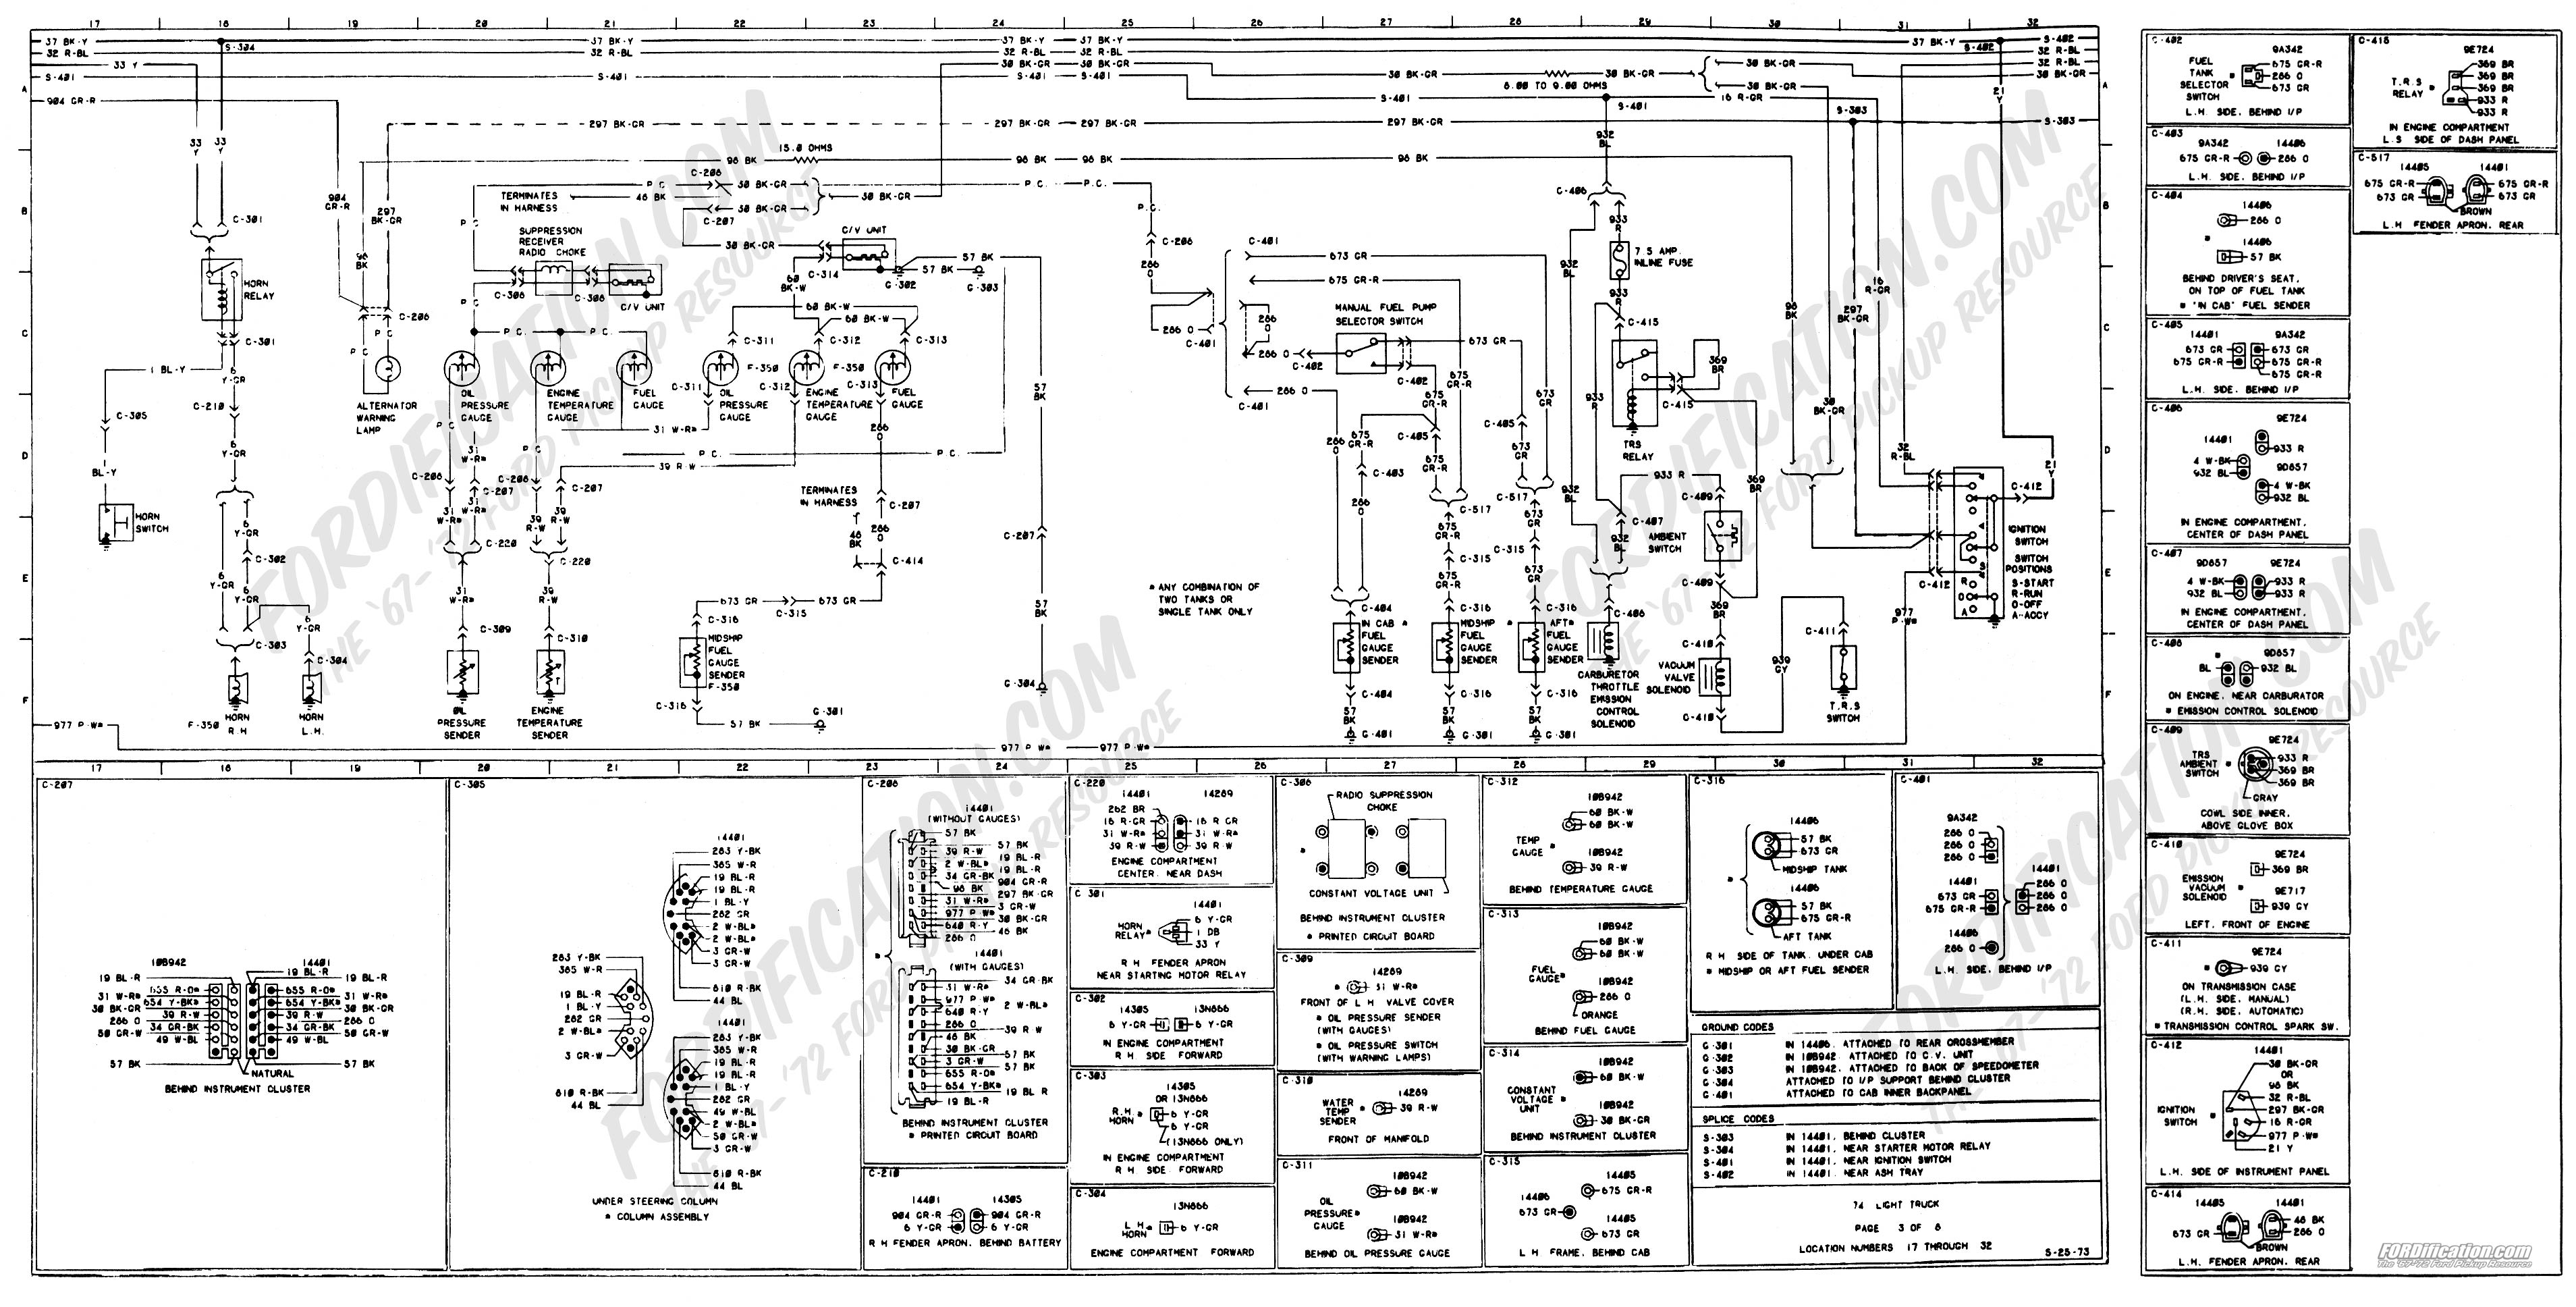 1973 1979 ford truck wiring diagrams schematics fordification net rh fordification net 2005 Ford Transit Wiring-Diagram Ford Transit Connect Wiring Diagram